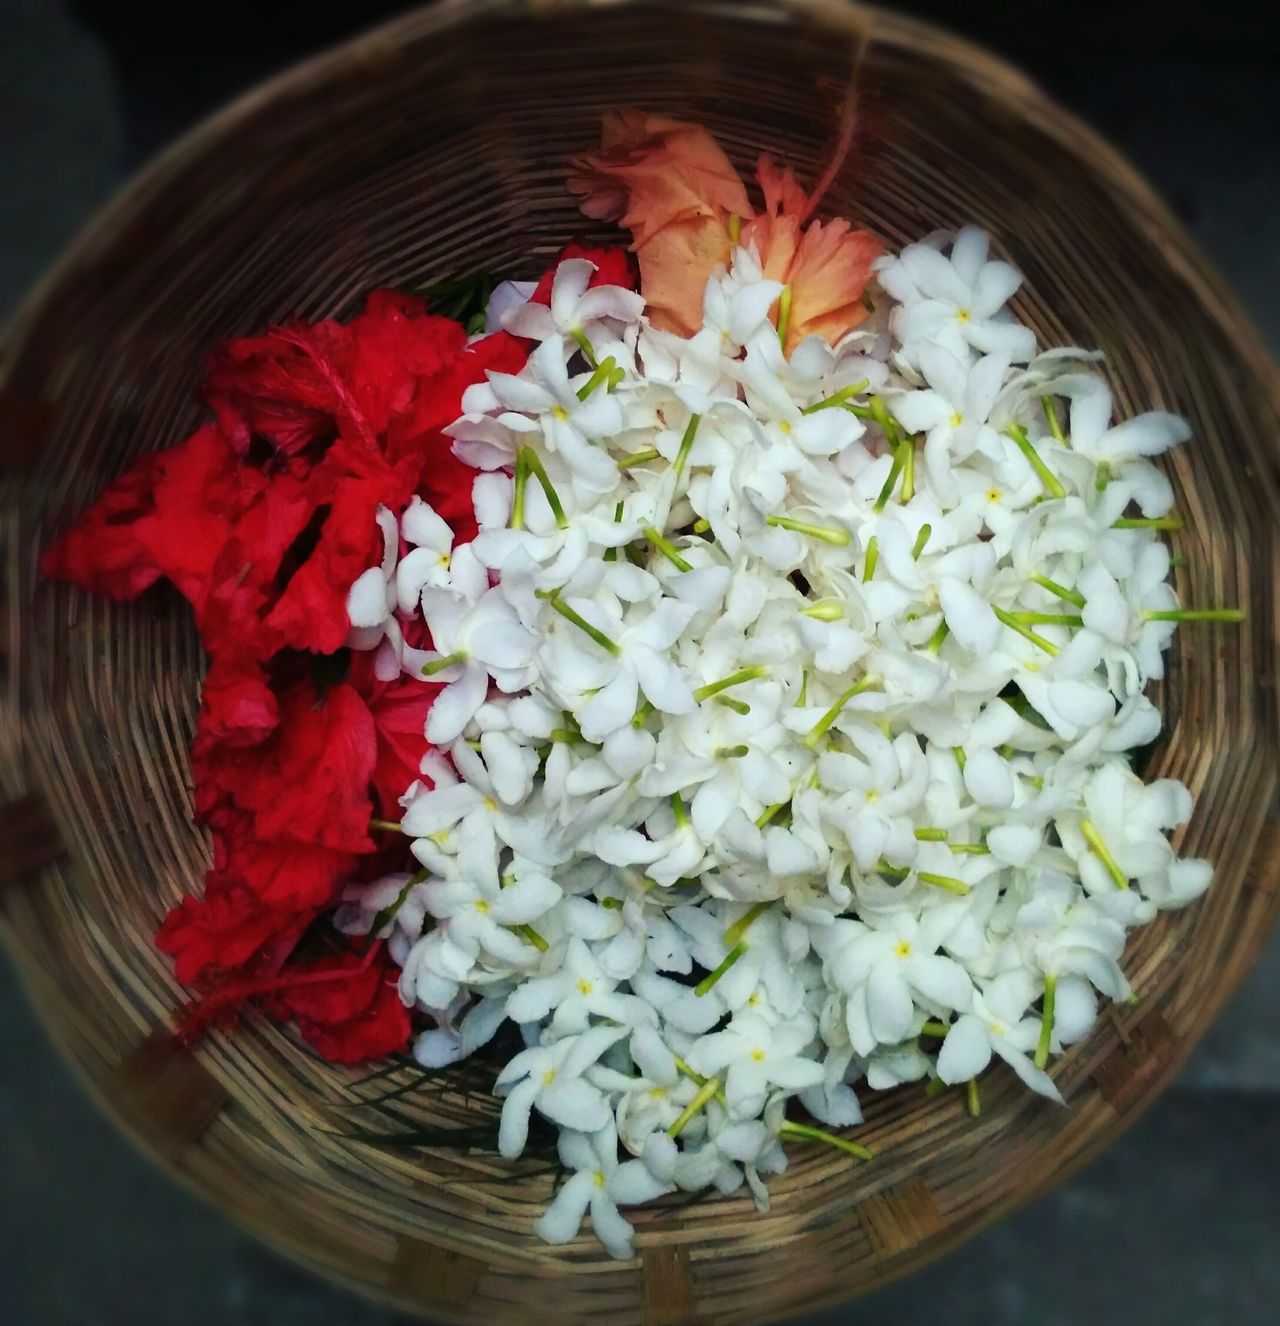 A collection of Red and White flowers in a round bamboo made basket.Maximum Closeness Circle Flower Flower Bucket Red Red Flower White White Flowers Bamboodesign Flower Head Close-up Vibrant Color light and reflection Day Perfect Fresh On Eyeem  Perfect Symmetry